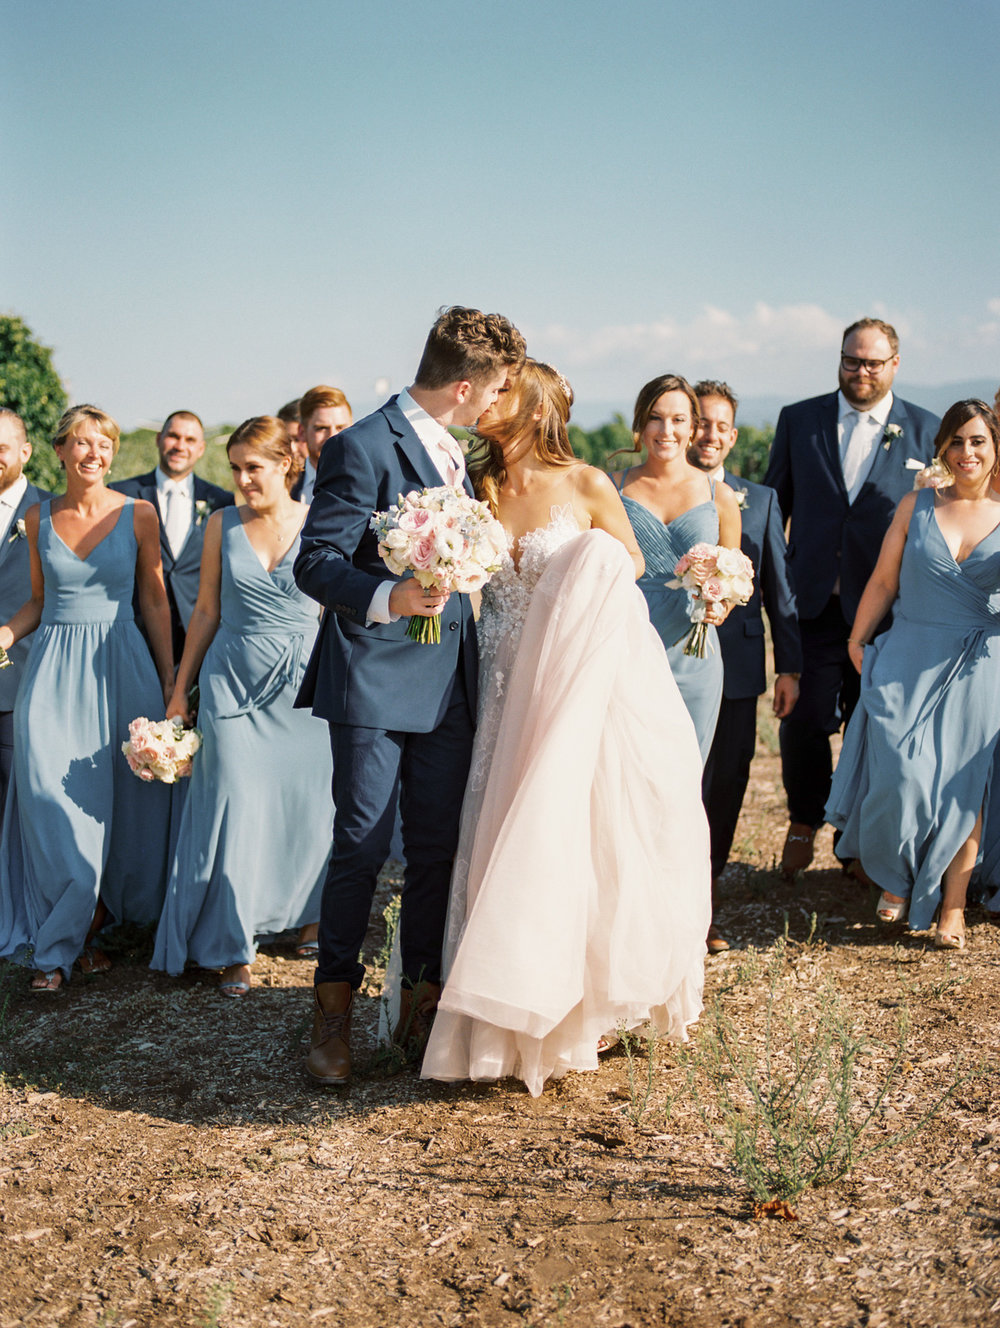 Bridal party walking through Wiens winery in Temecula | Harrison & Jocelyne's gorgeous Temecula wedding at Wiens Family Cellars captured by Betsy & John Photography